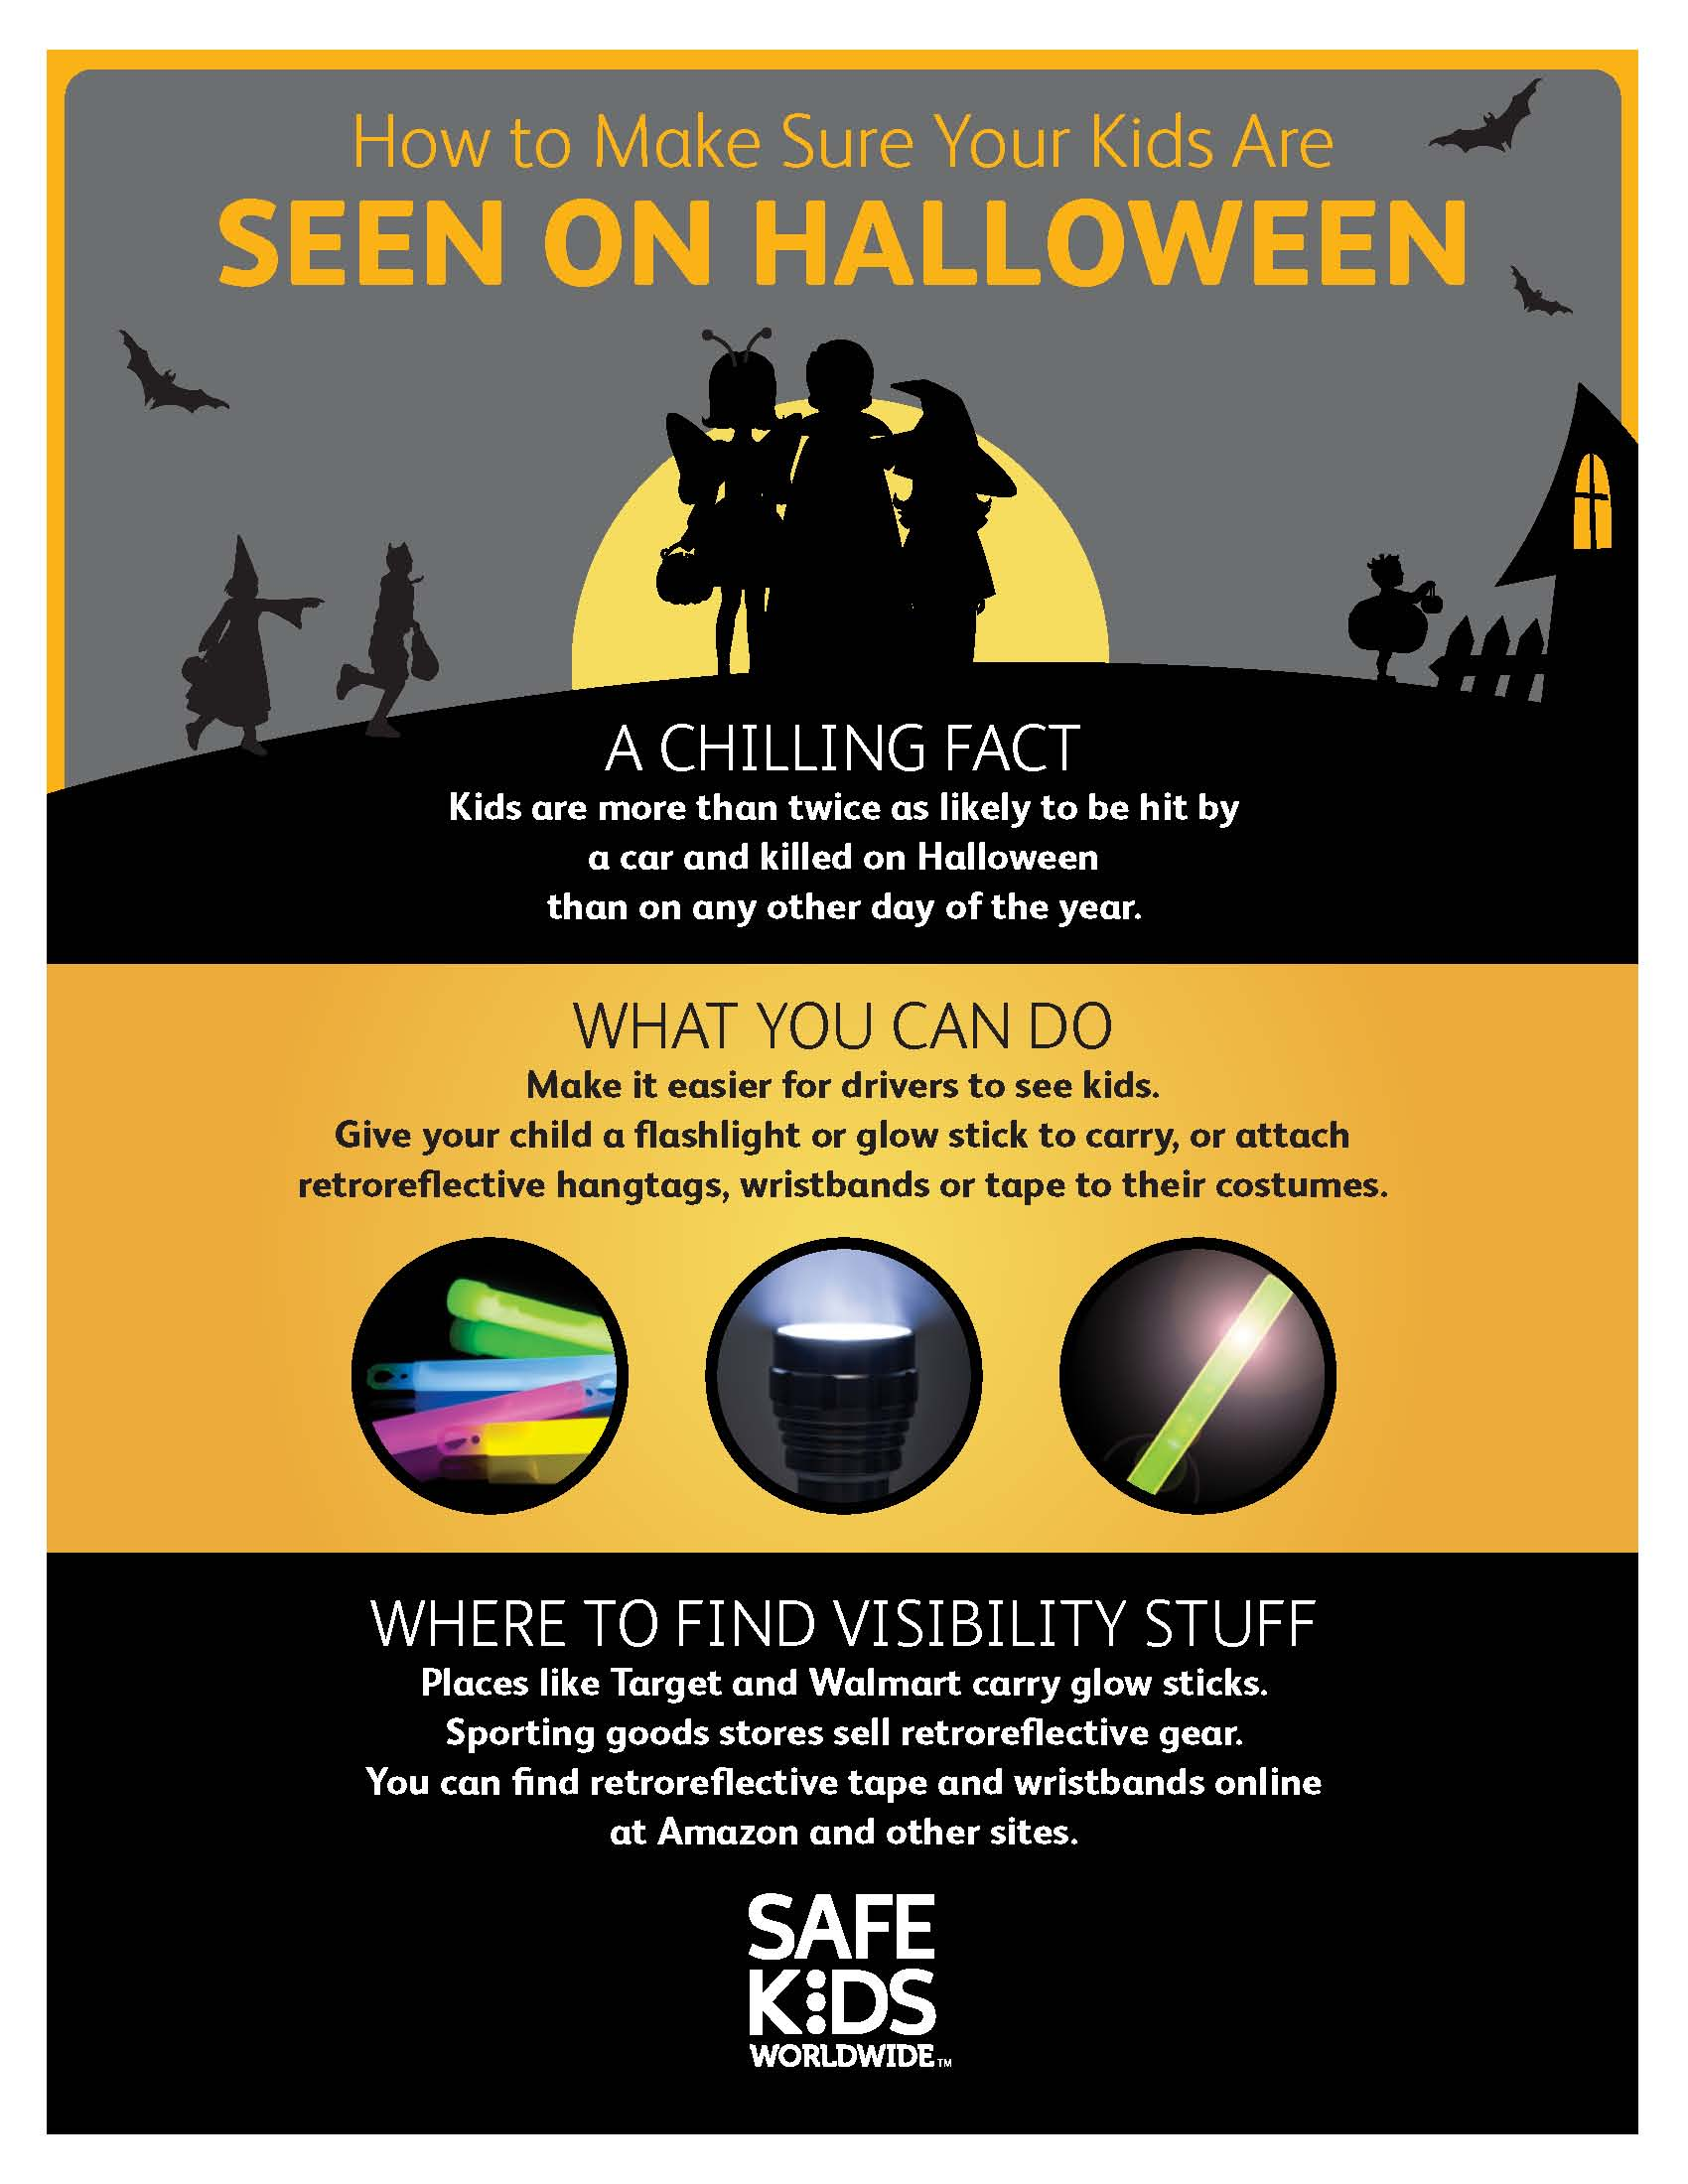 skw_halloween_2013_visibility_flyer-color_copy